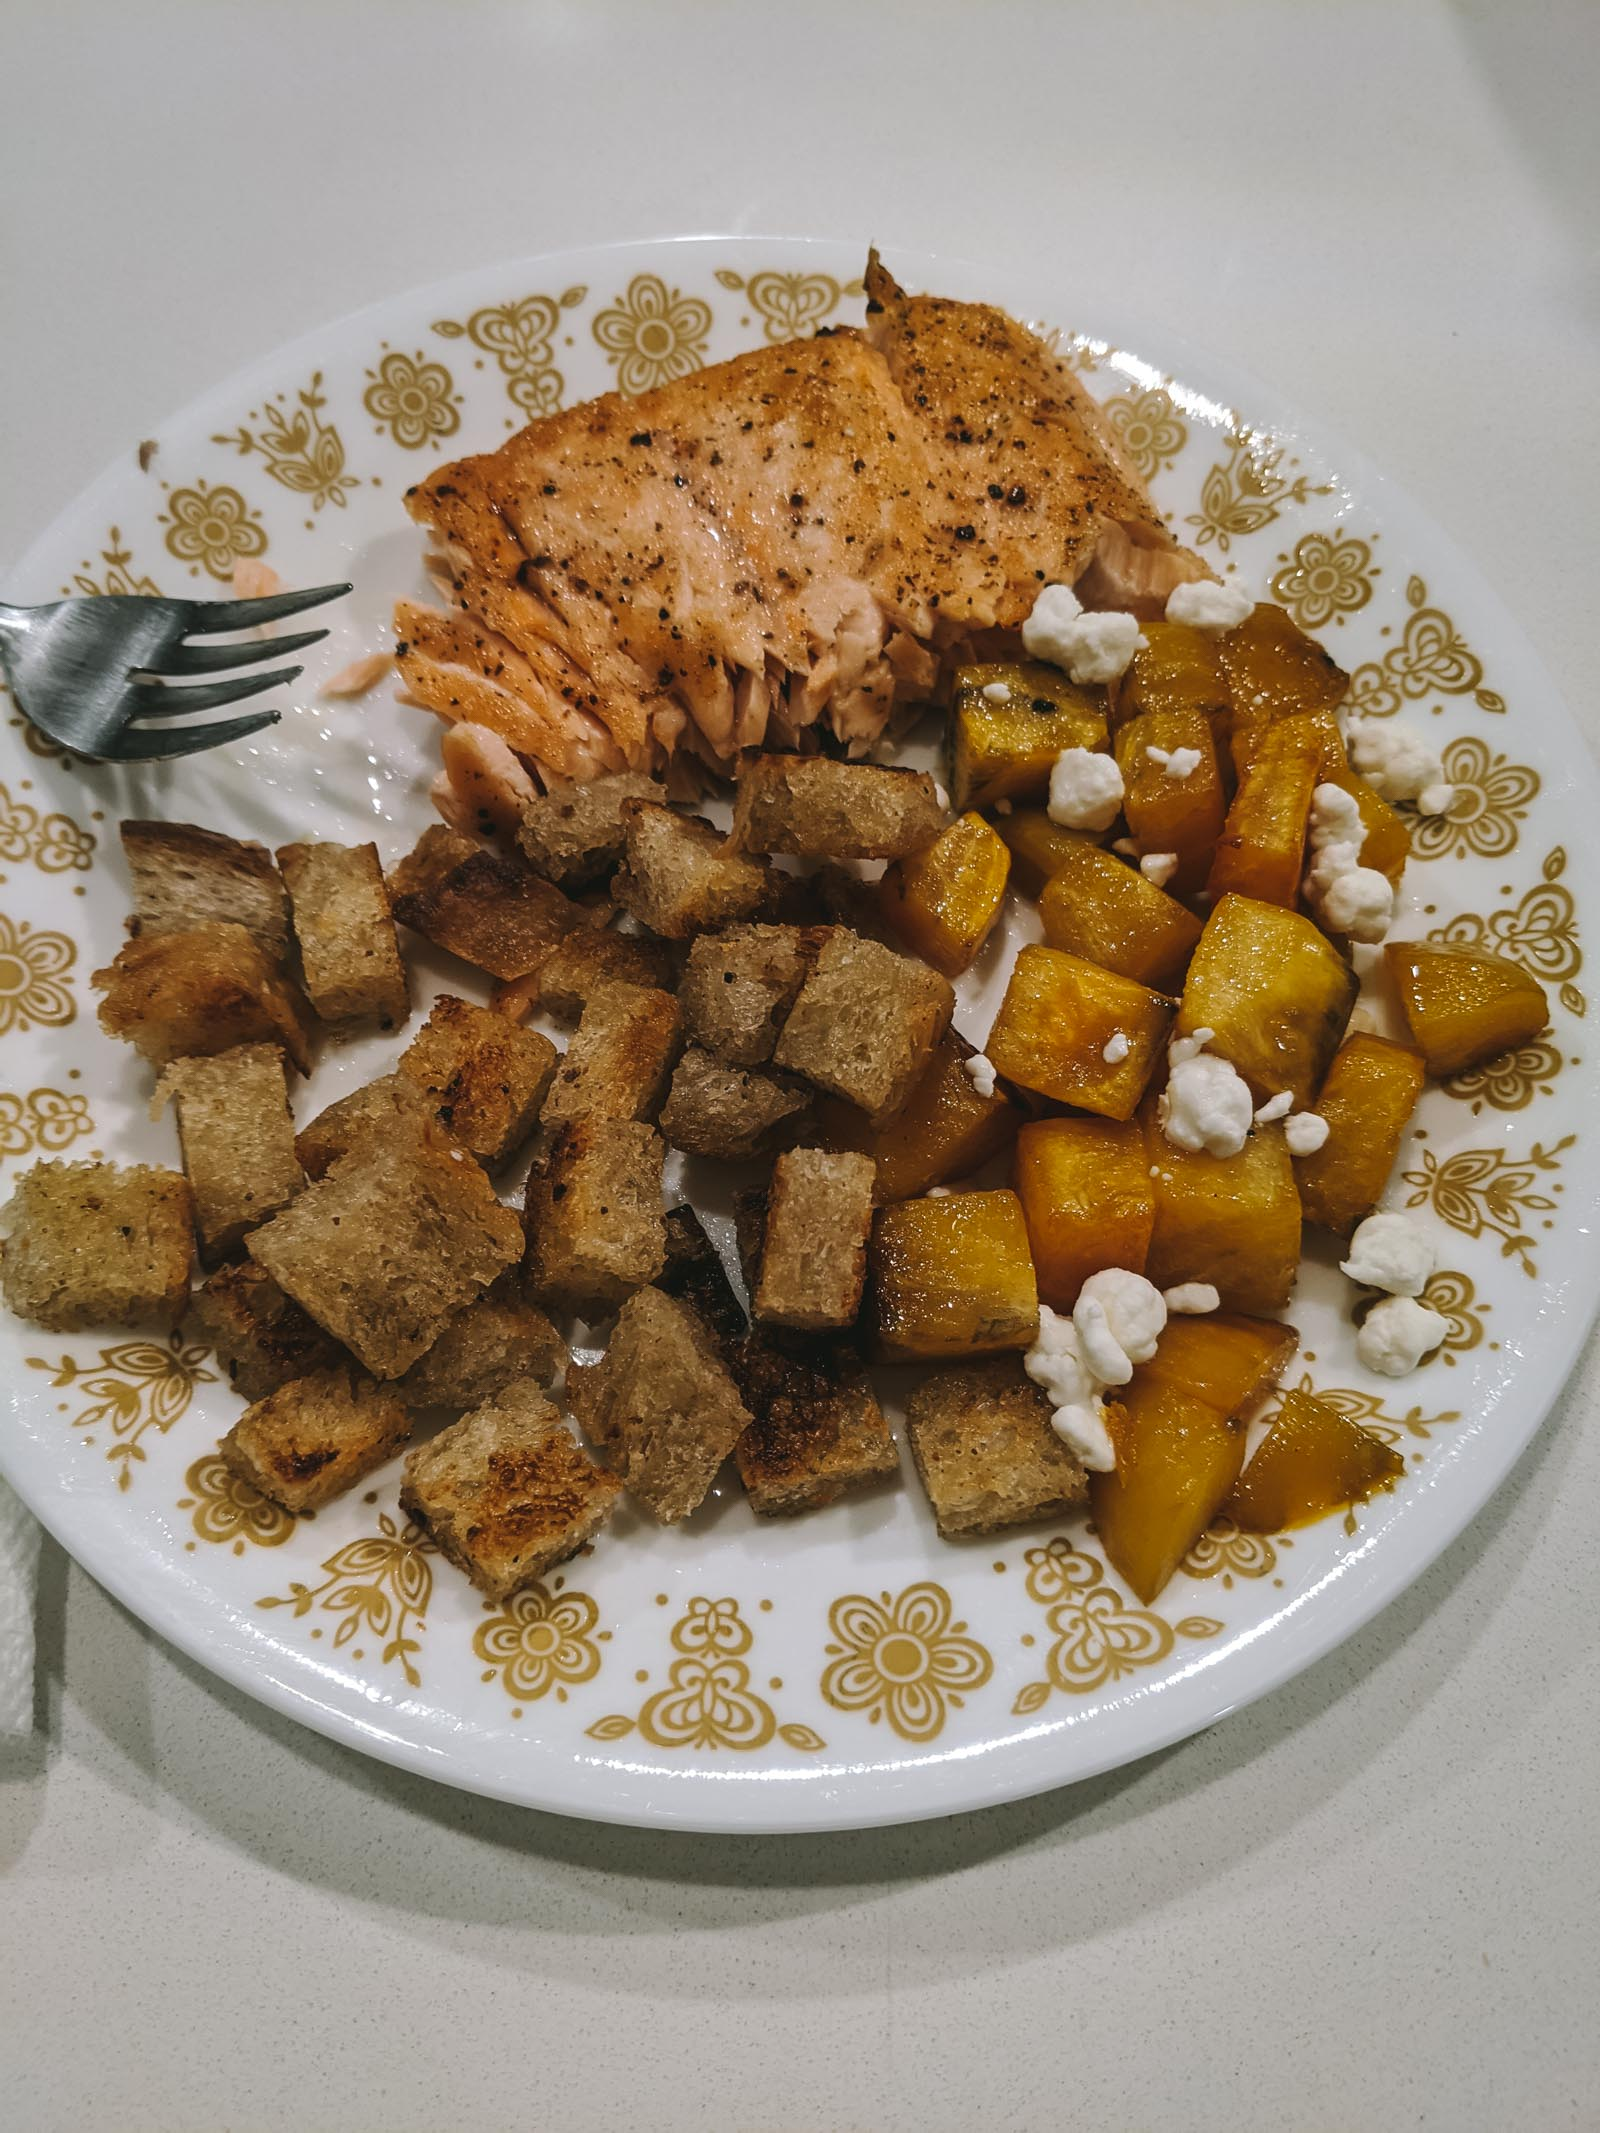 Salmon + beets + croutons